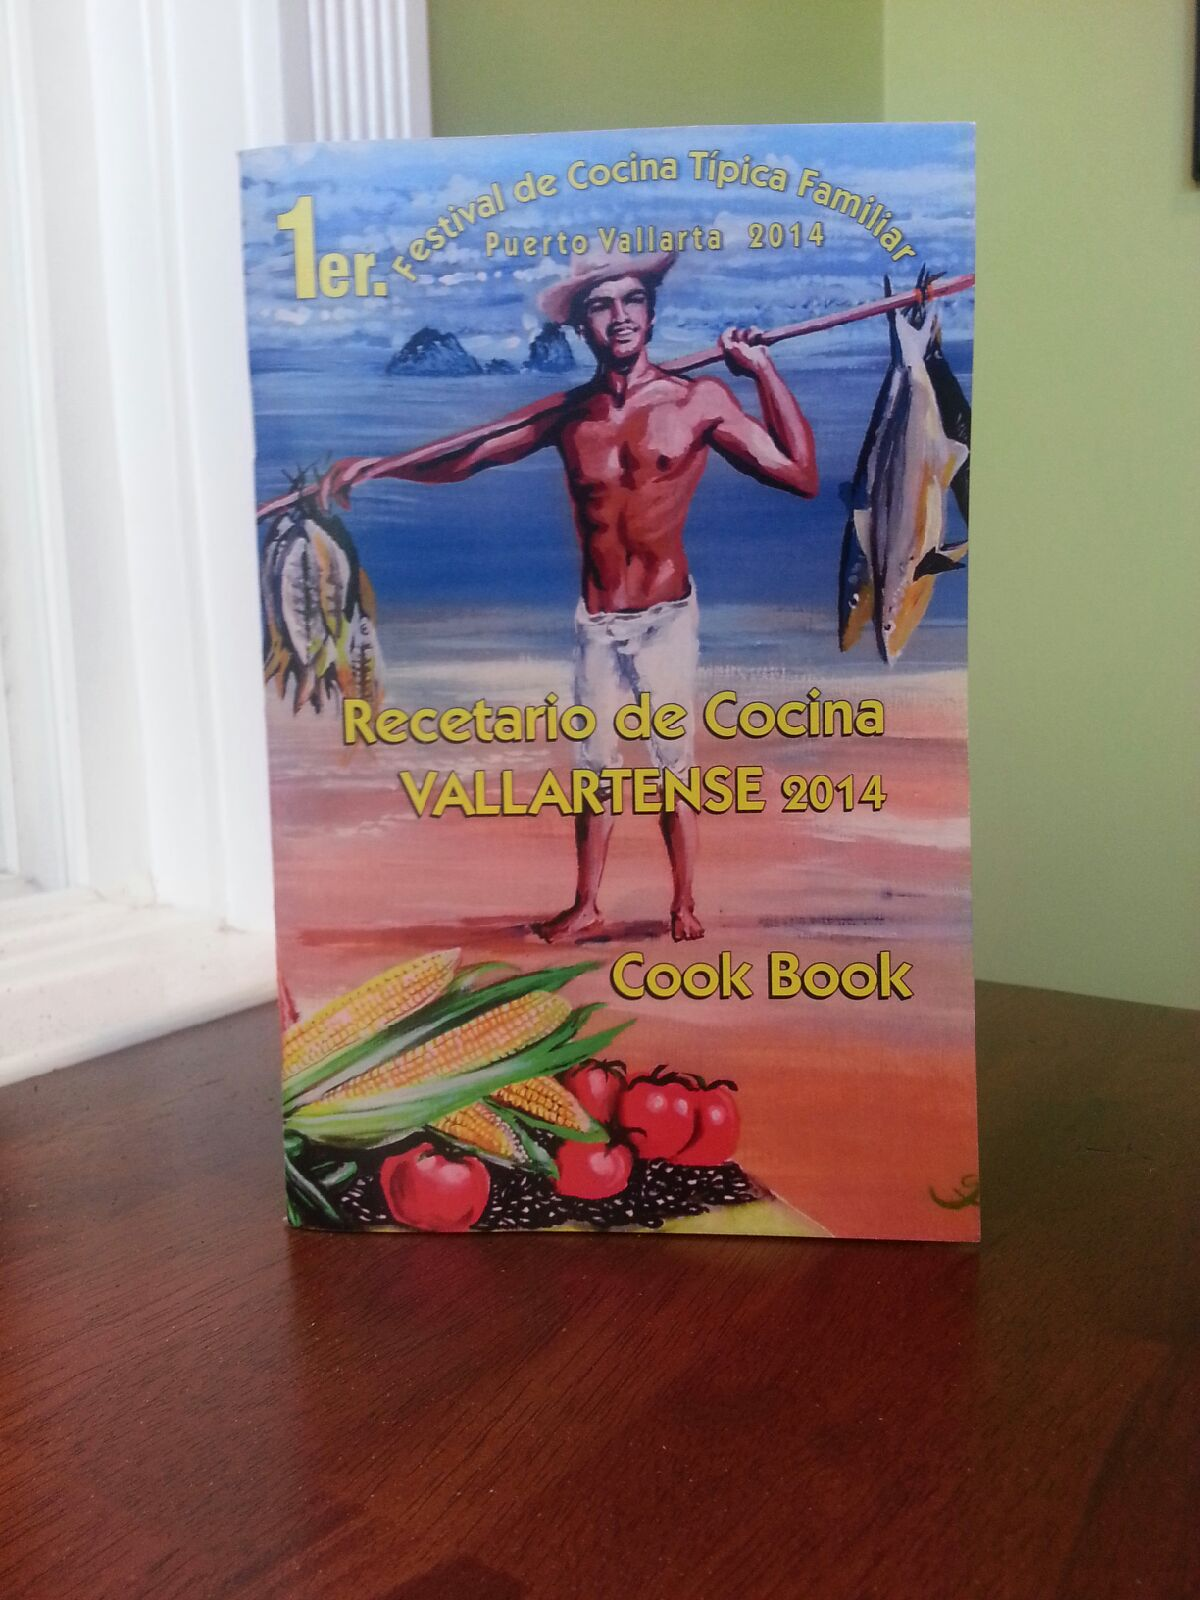 Puerto Vallarta Food Festival Cookbook